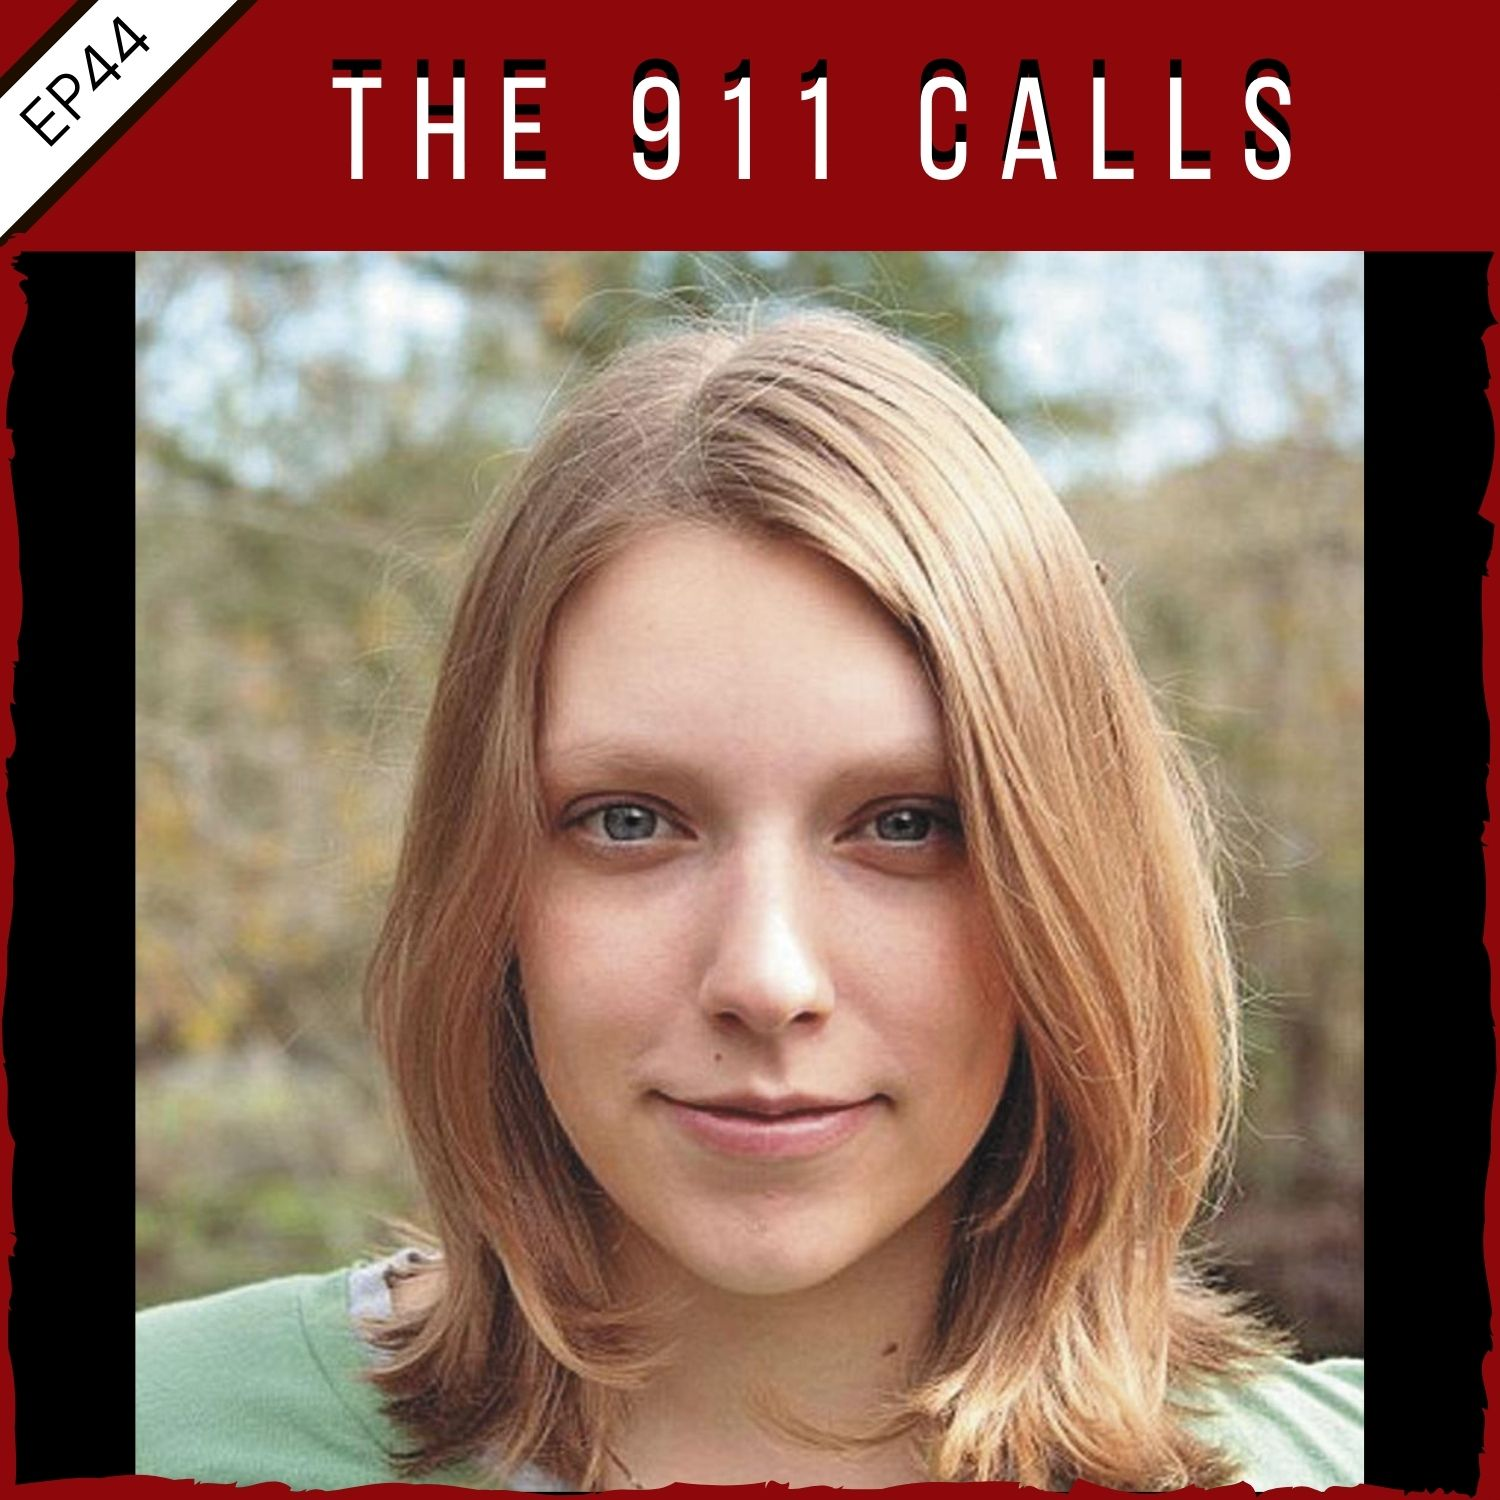 EP44:  Denise Amber Lee - The 911 Calls